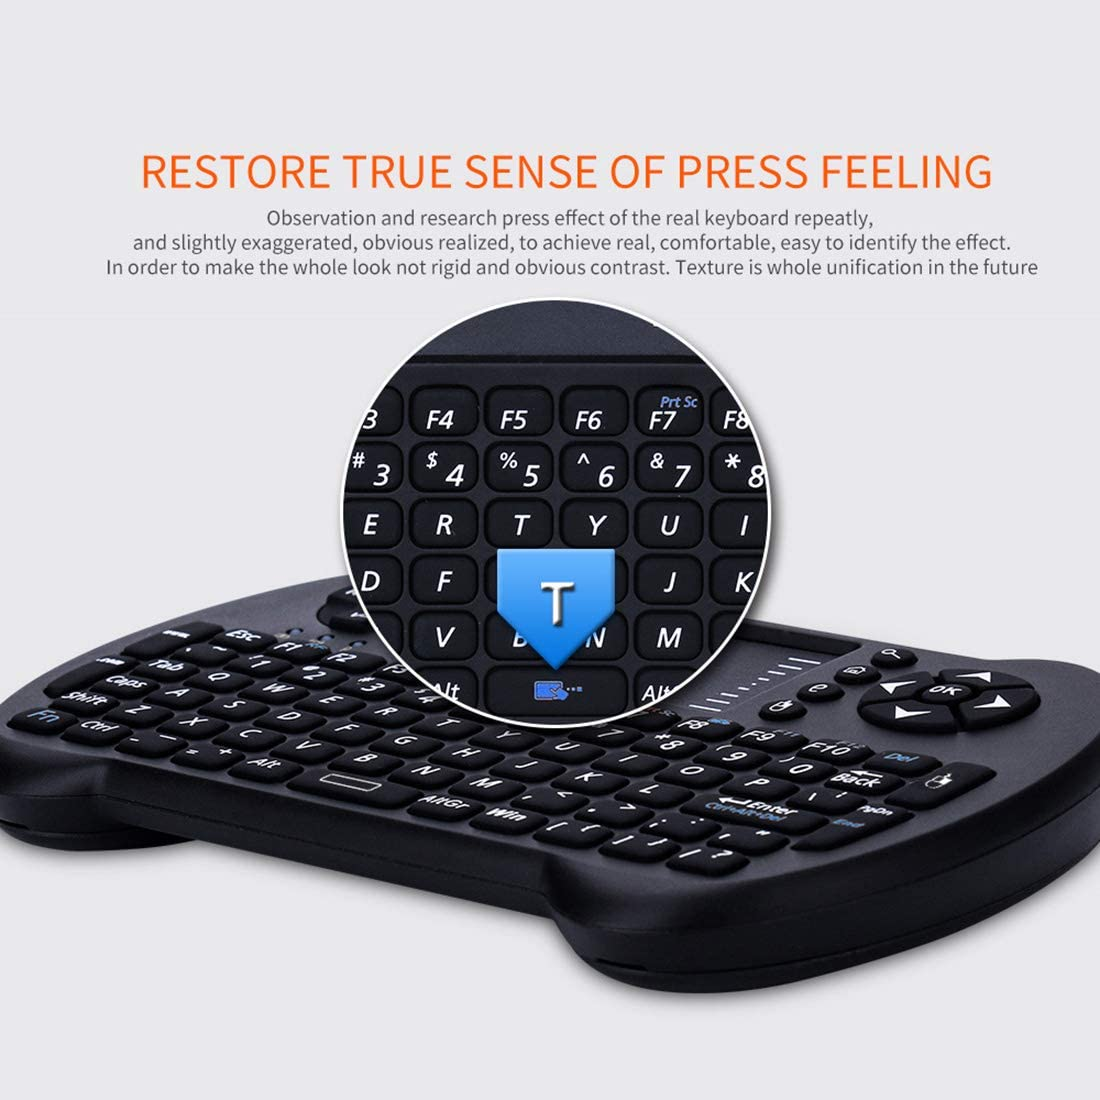 Desktop Computer Color : Black Computer S501 Bluetooth Mini Full QWERTY Keyboard with Touchpad /& Multimedia Control for Laptop Black Convenient and Highly Recommended STB TV